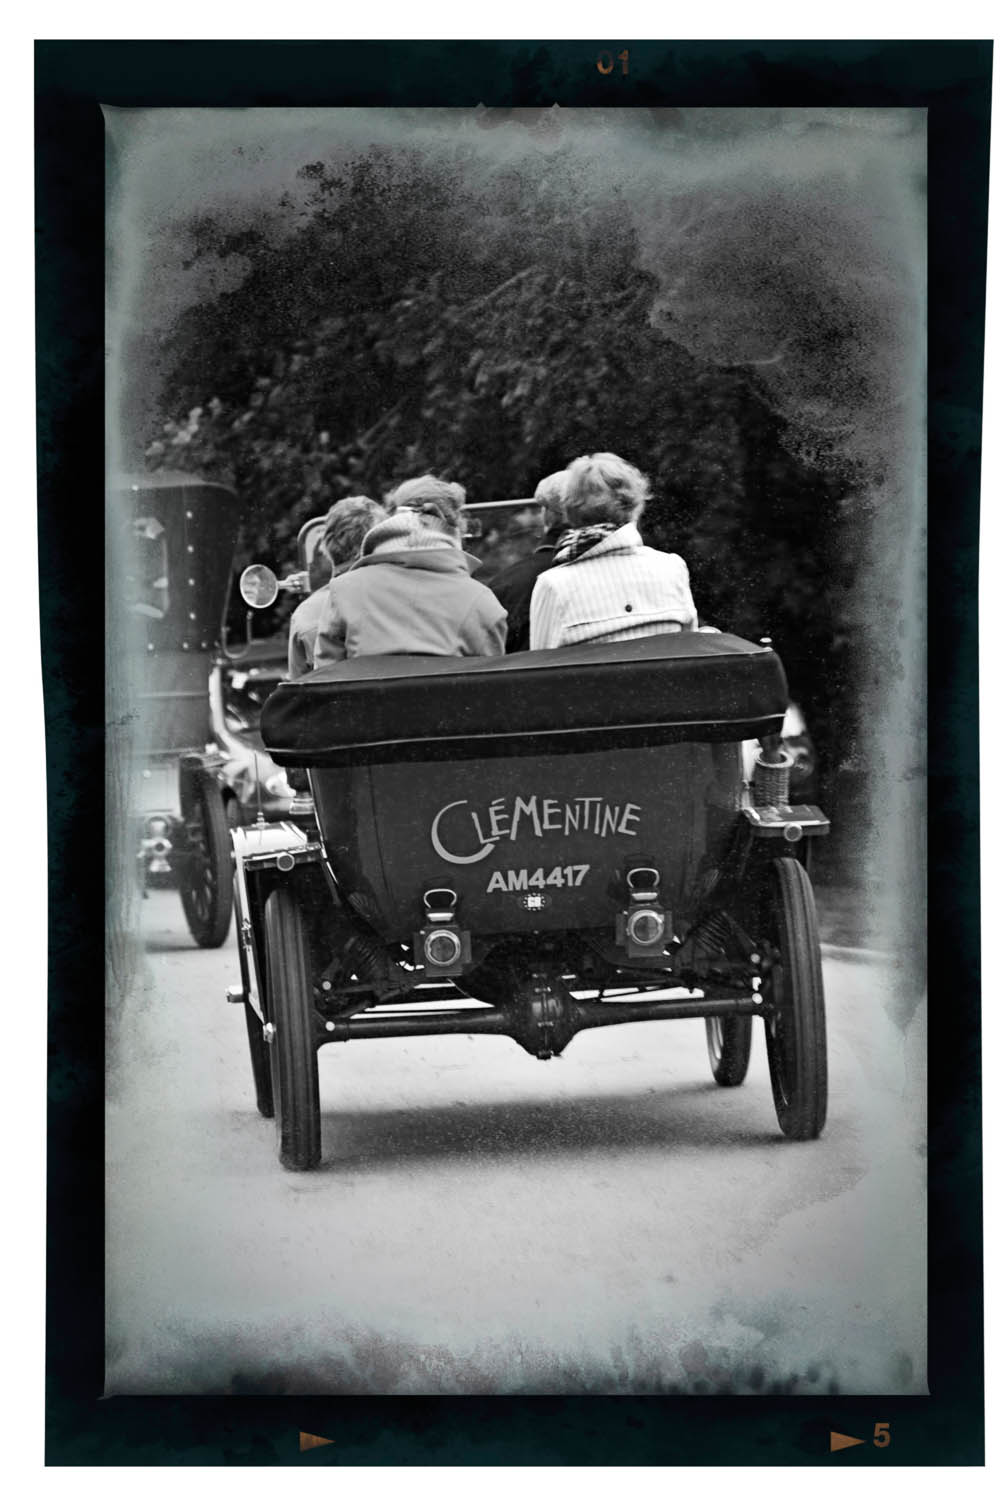 A vintage car called Clementine leaving Little Easton Country Fair